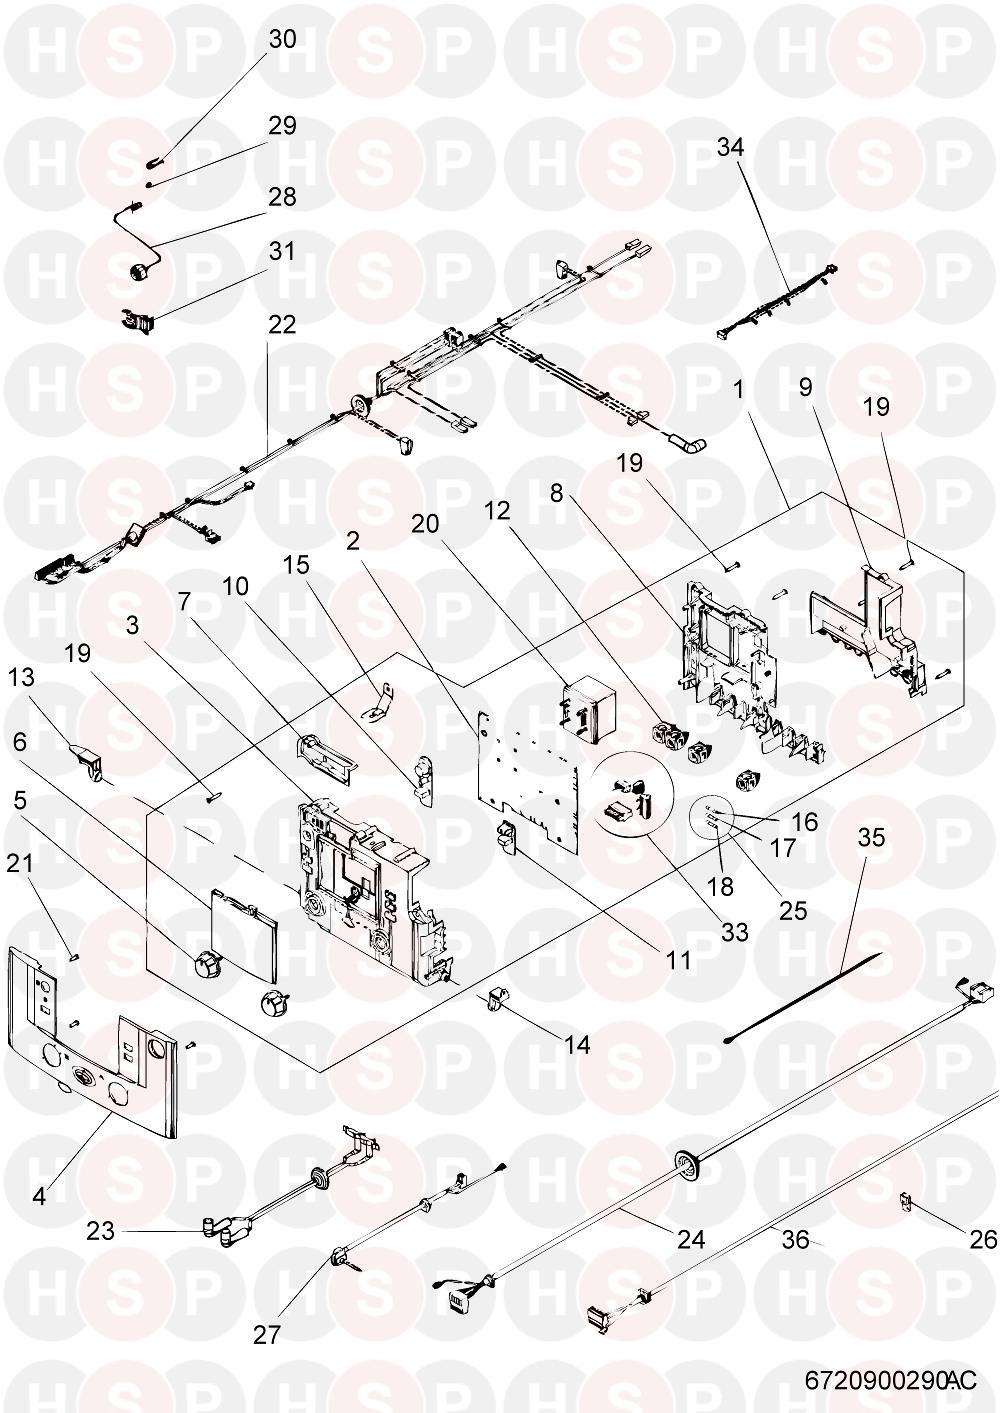 Worcester bosch 24i system boiler wiring diagram best wiring worcester bosch wiring diagram cheapraybanclubmaster Image collections